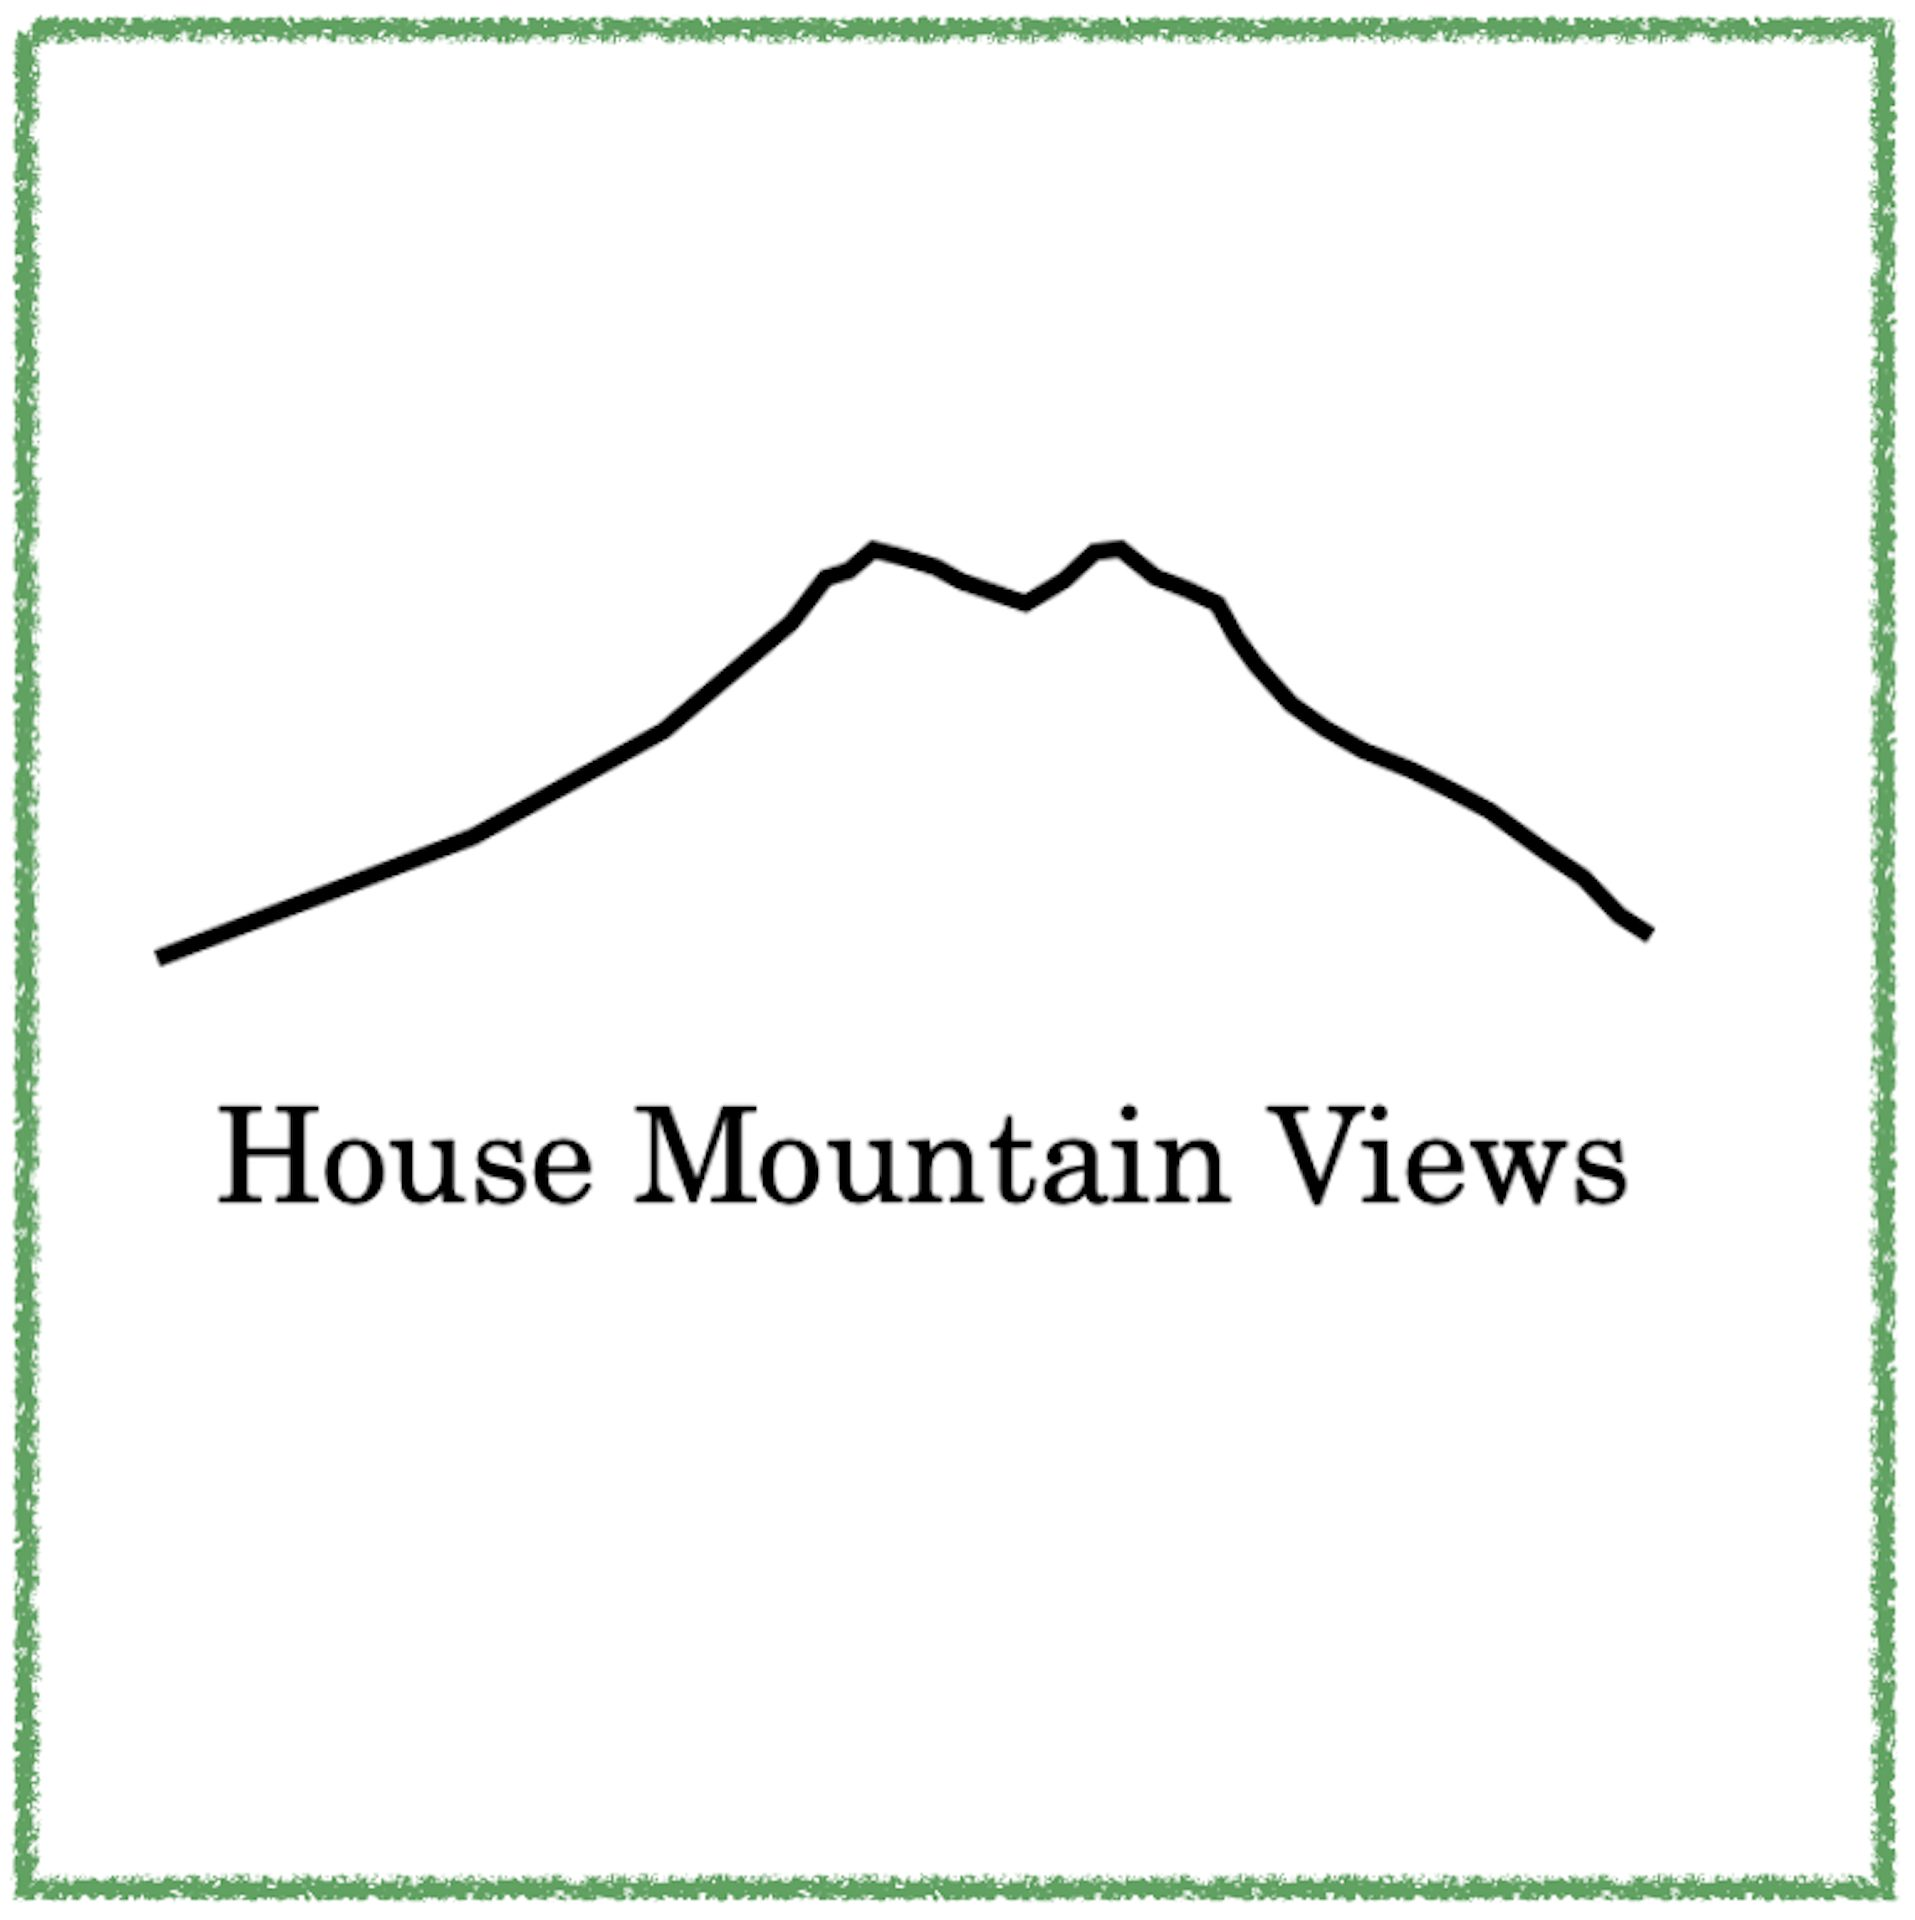 House Mountain Views